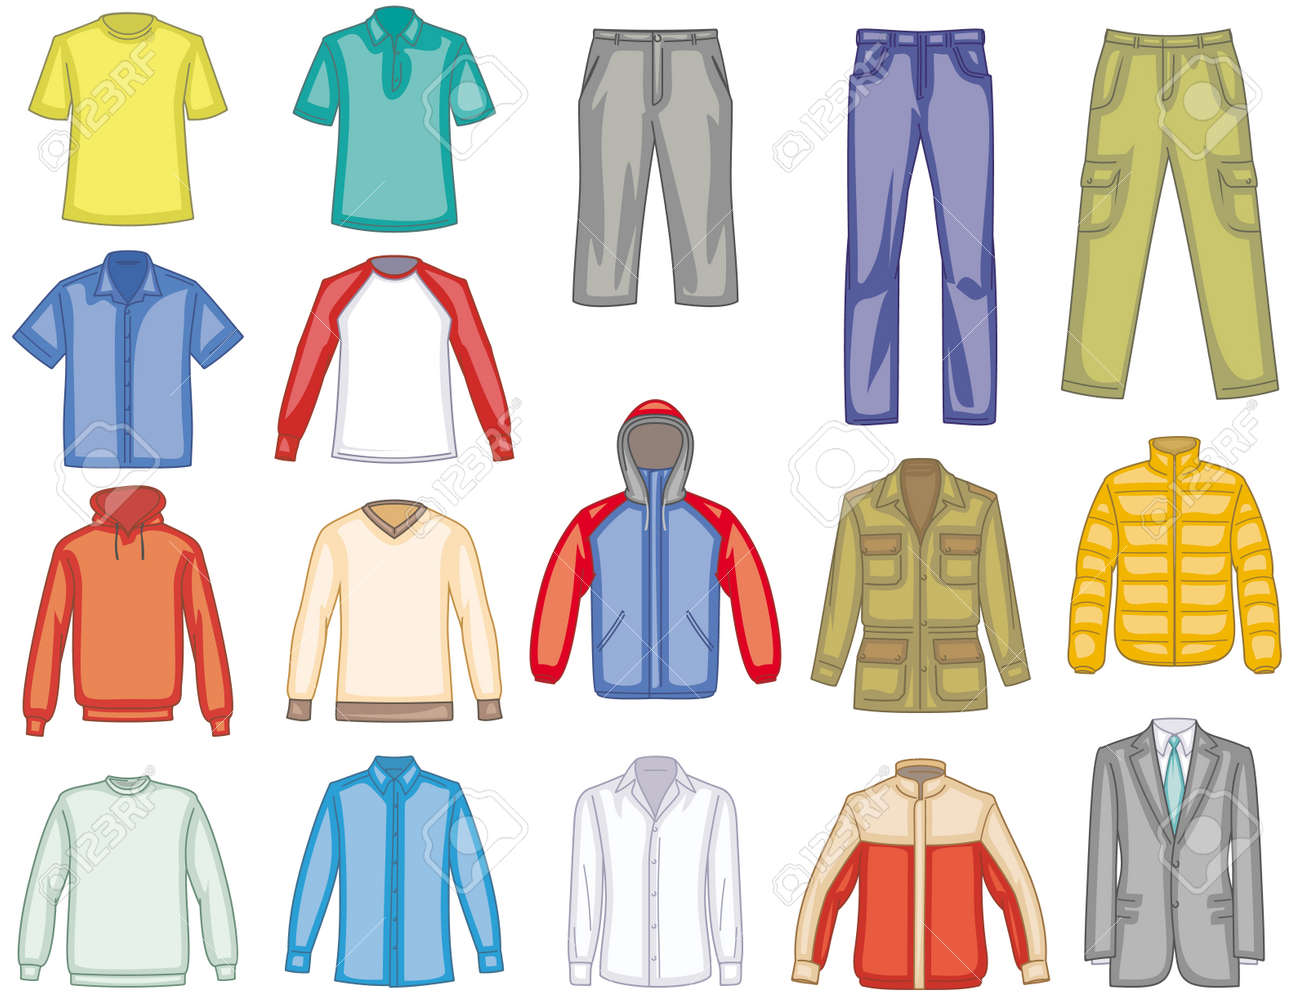 Men's Clothes Illustration Royalty Free Cliparts, Vectors, And ...